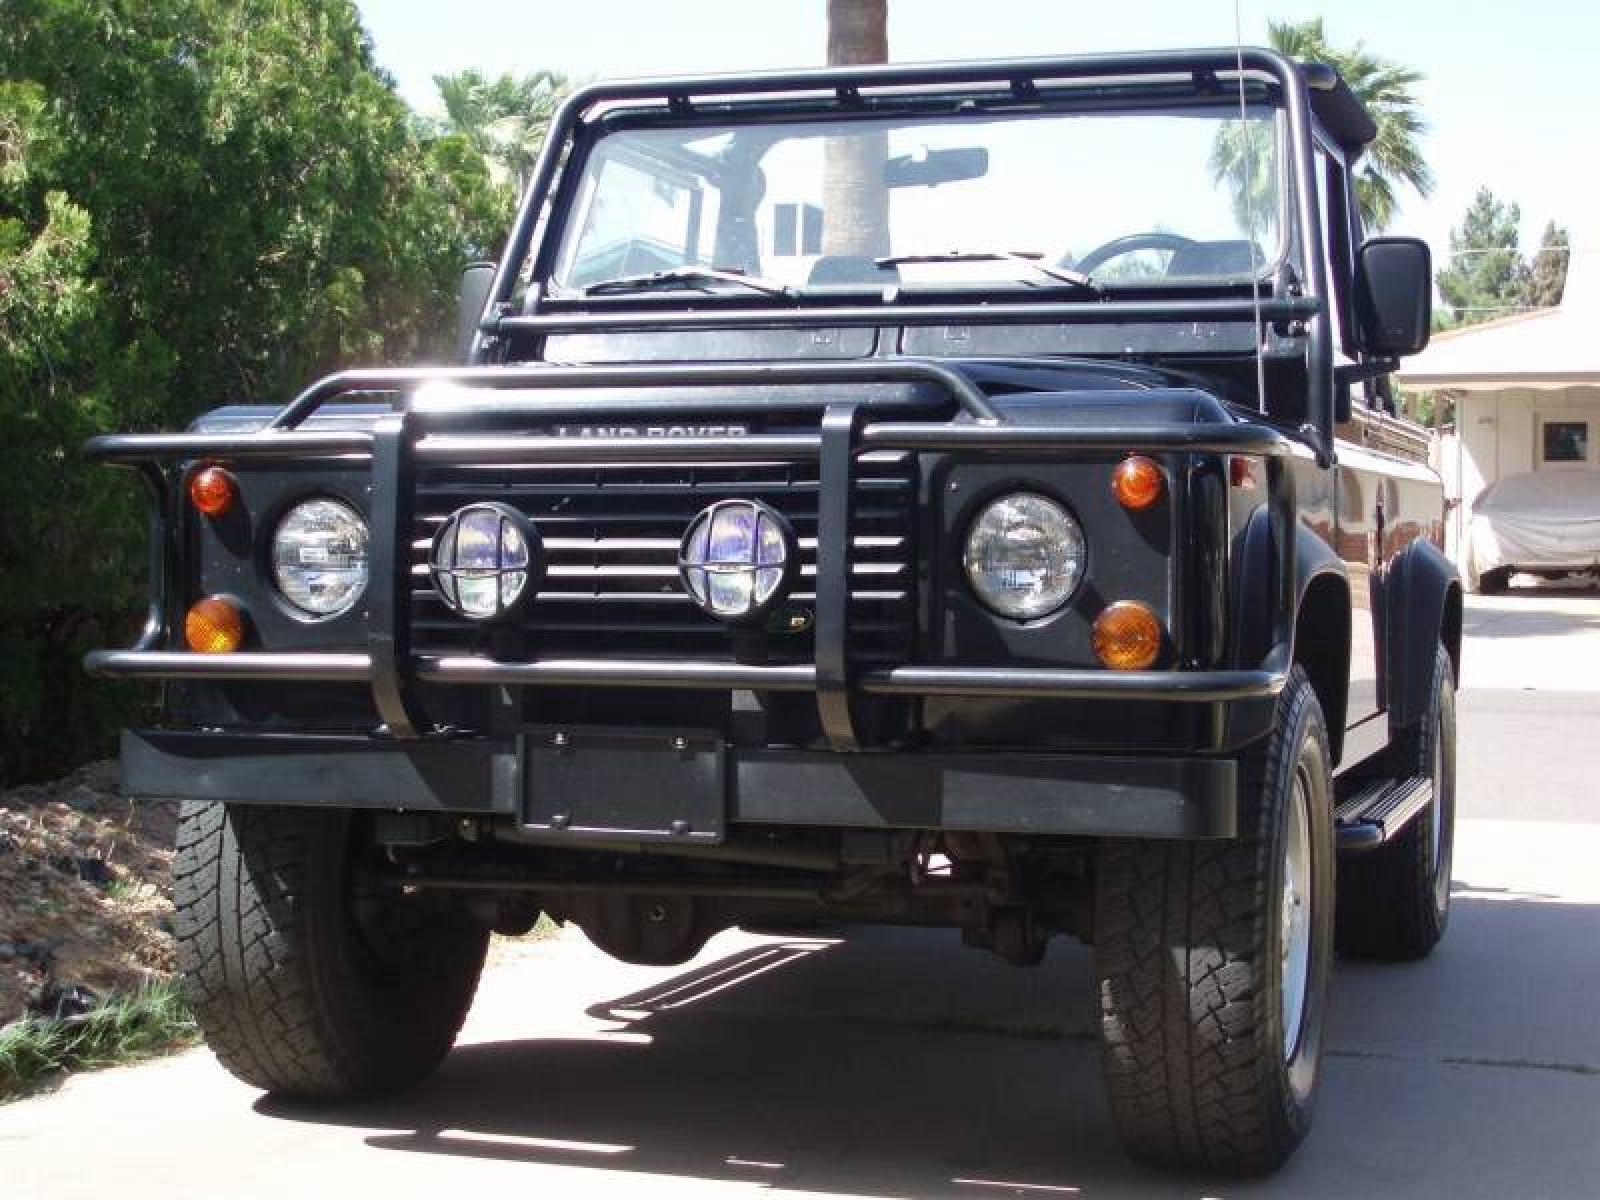 1995 Land Rover Defender Information and photos ZombieDrive